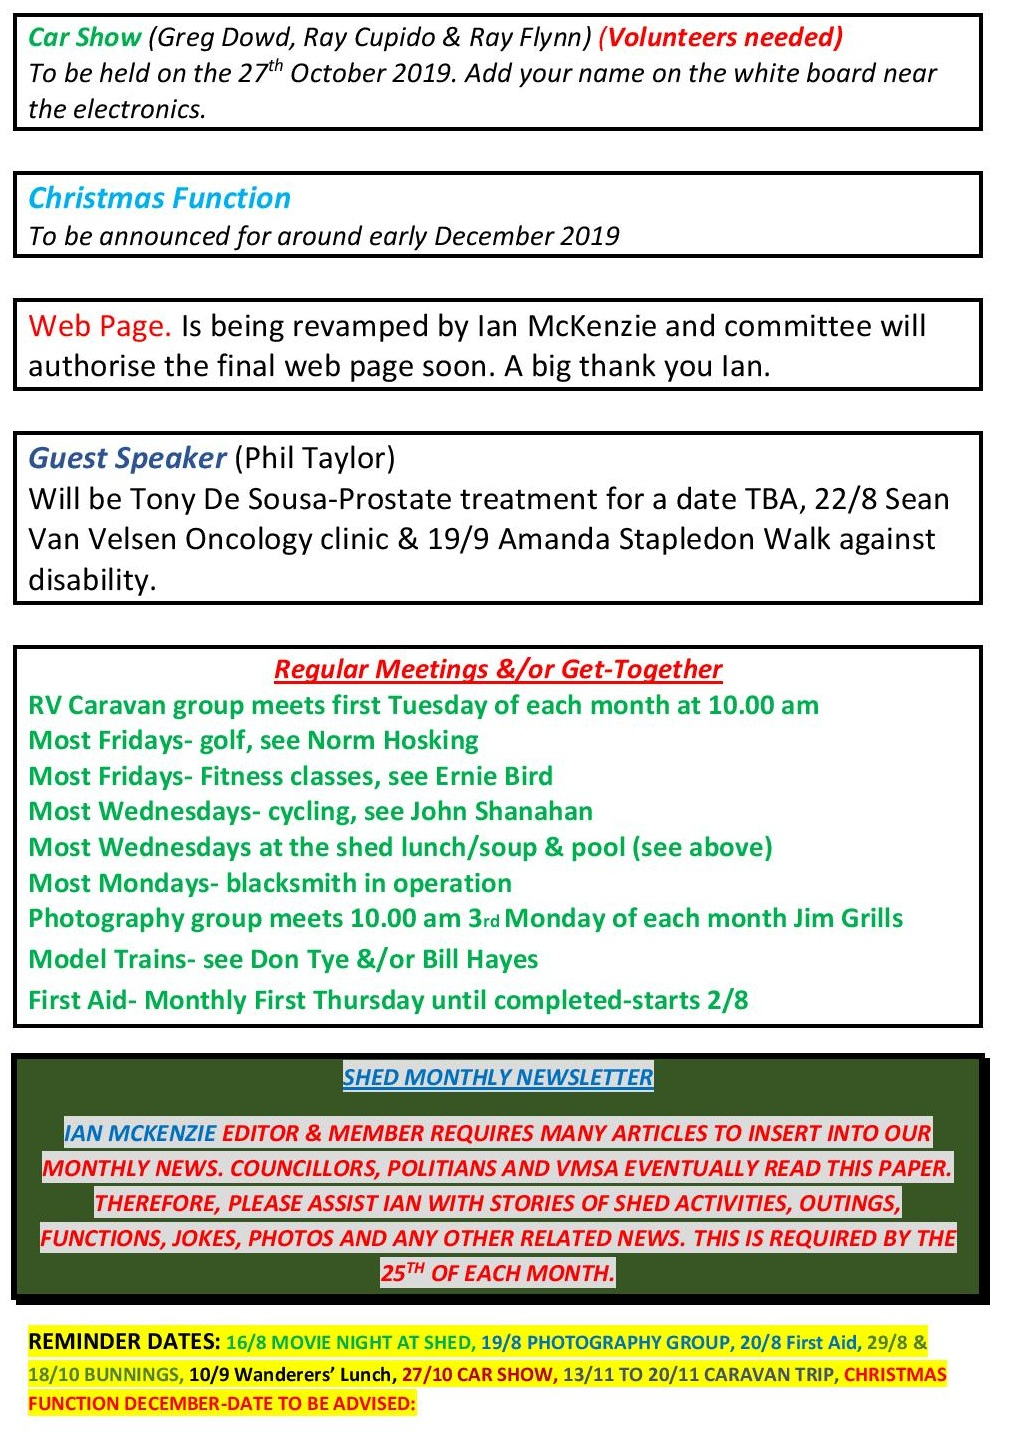 Newsletter+Weekly+for+160819-page-003.jpg